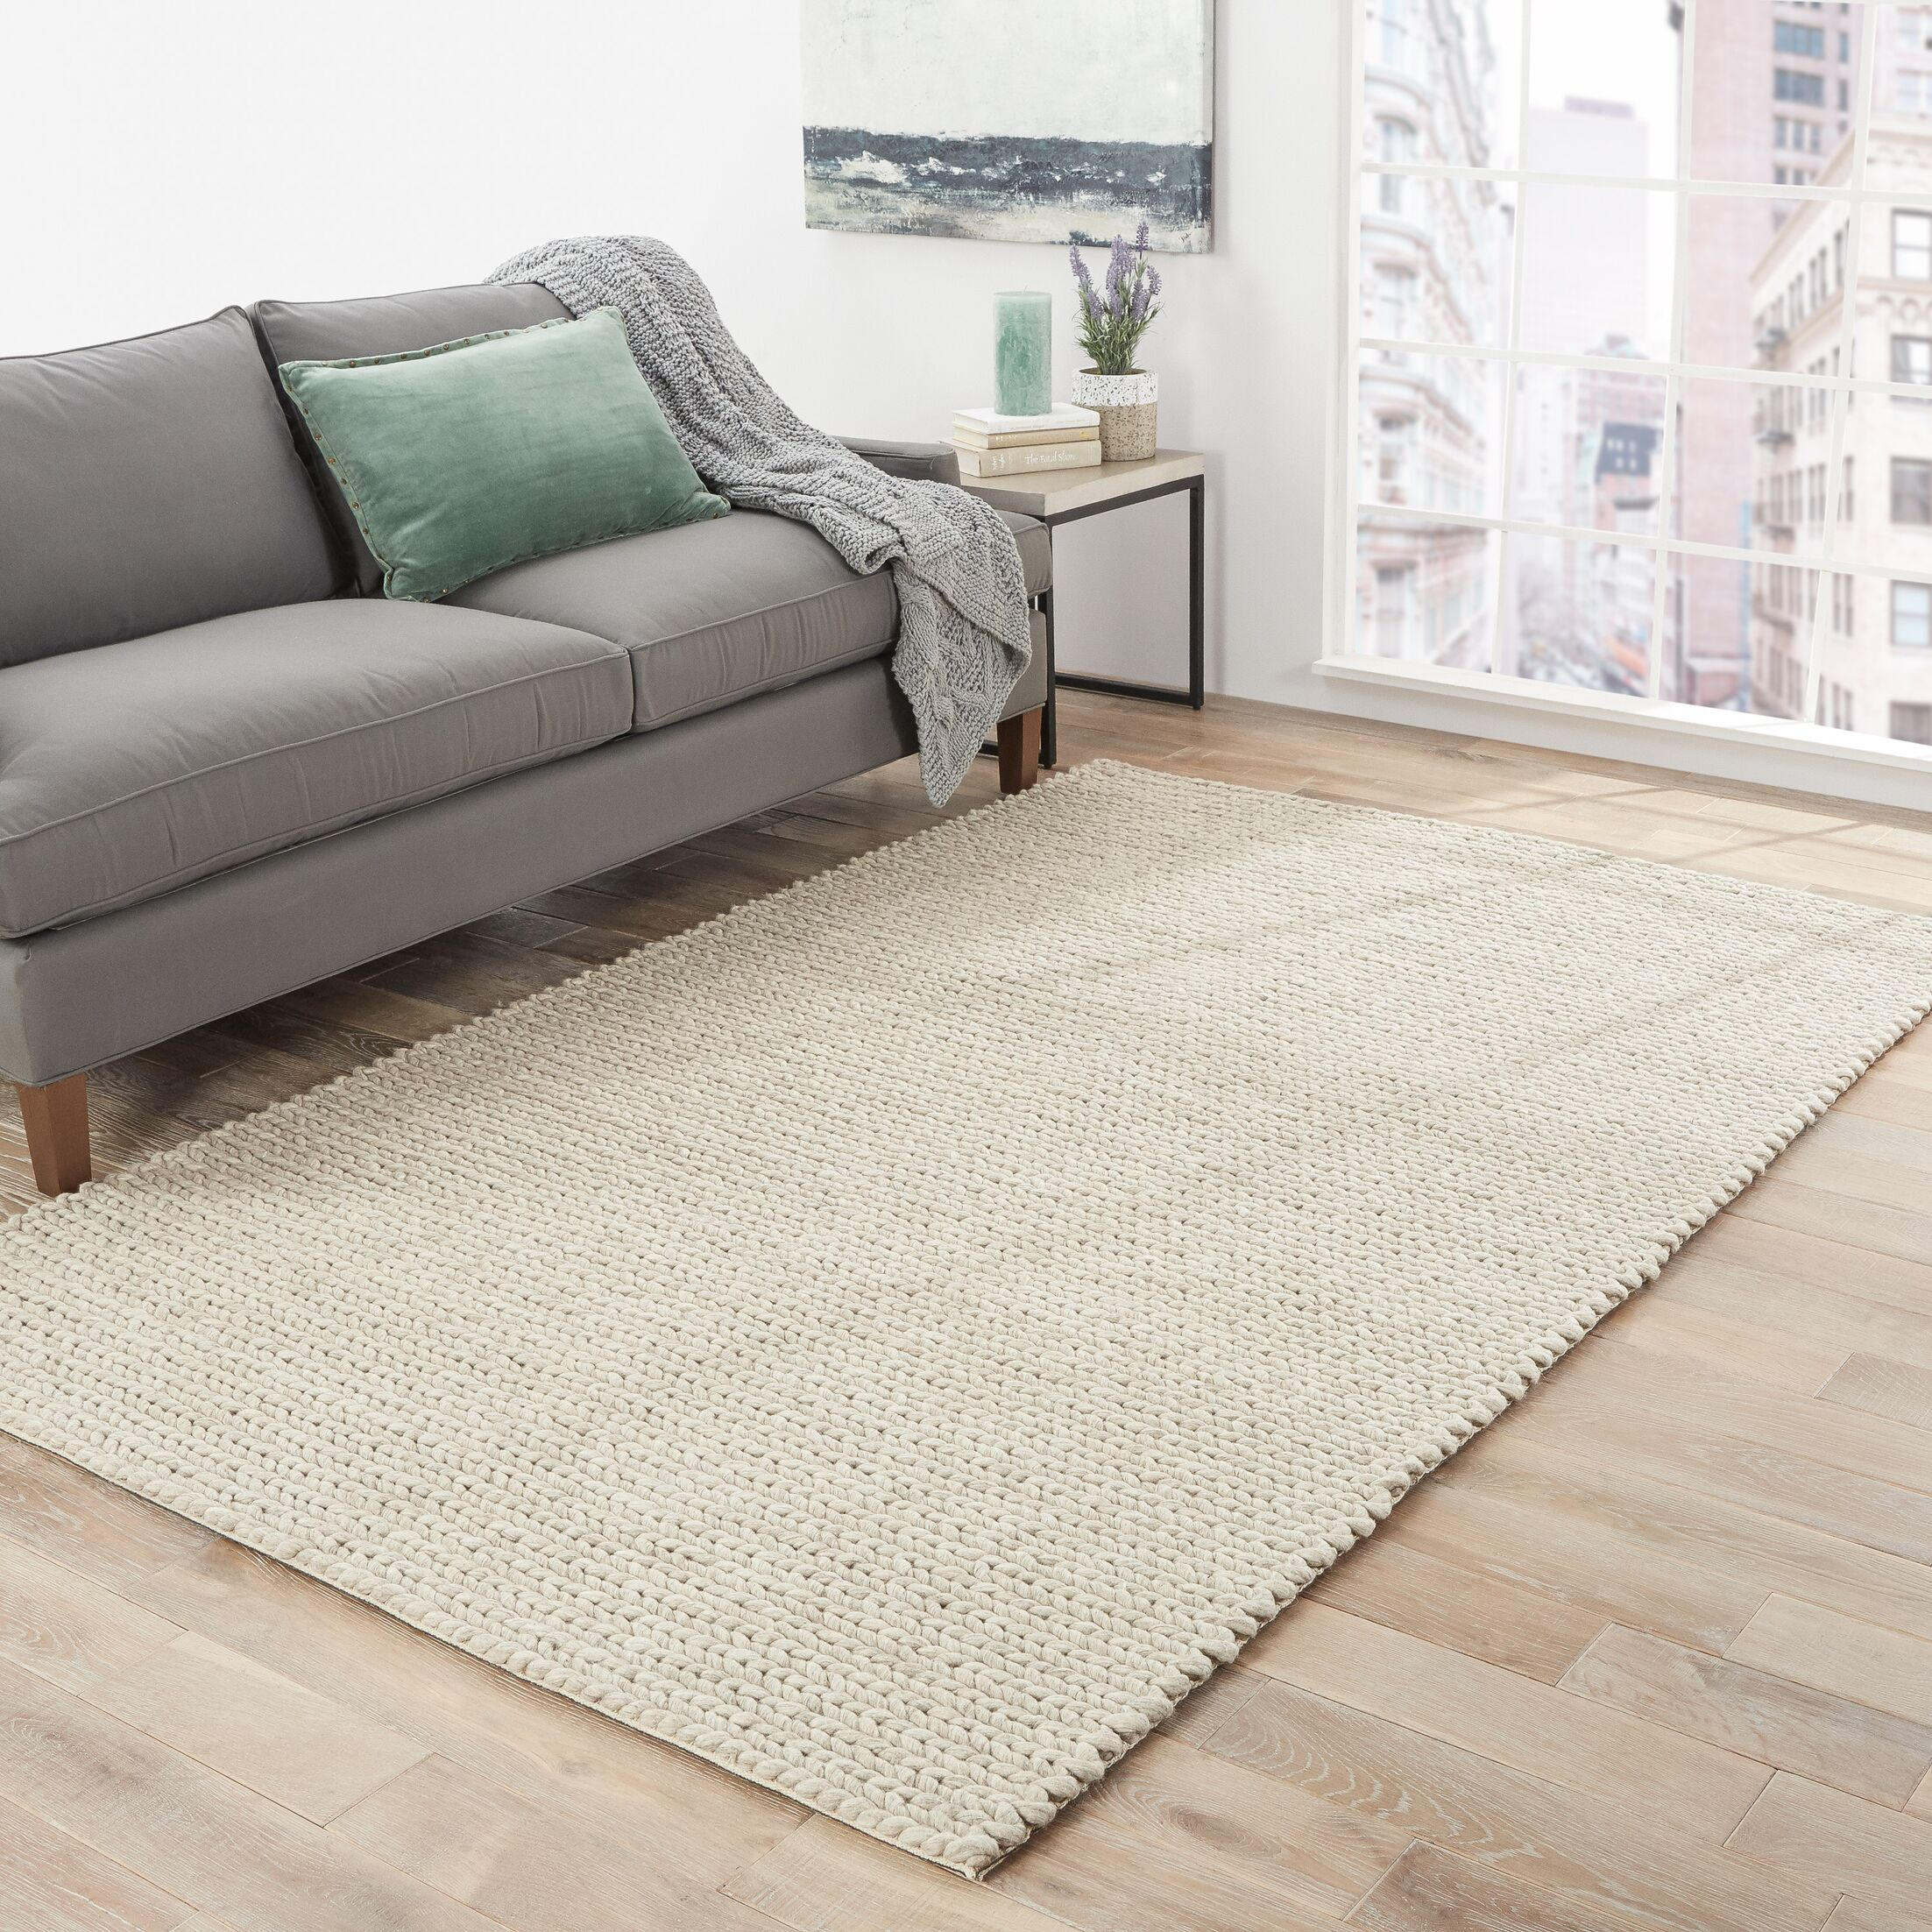 Checotah Gray Rug Rug Size: Rectangle 10' x 14'